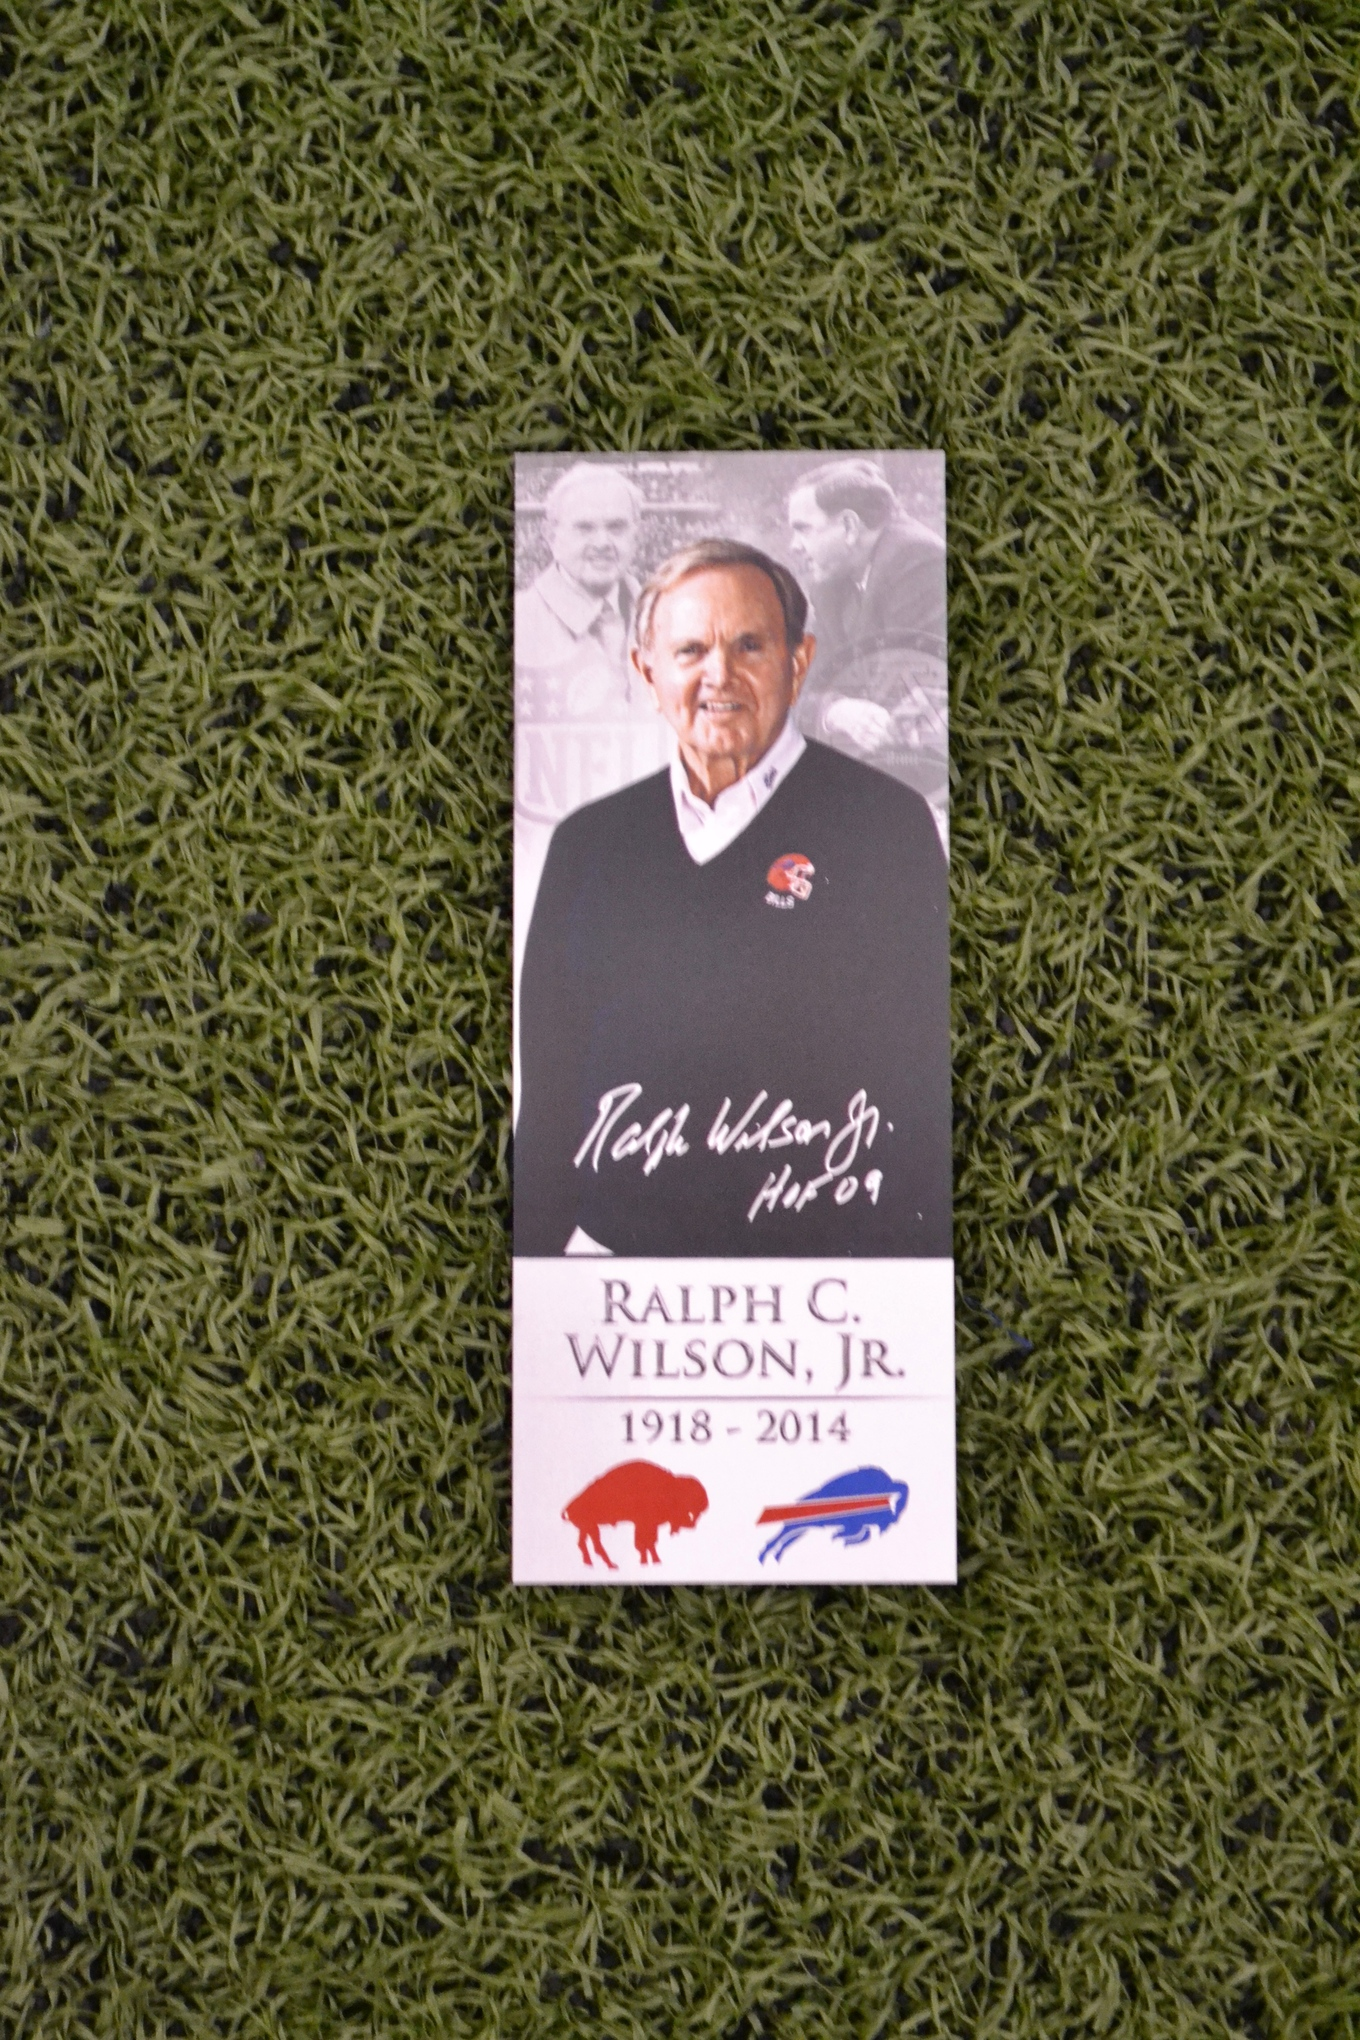 A remembrance card available to visitors at Ralph Wilson's memorial event hosted by the Buffalo Bills. (April 5, 2014)